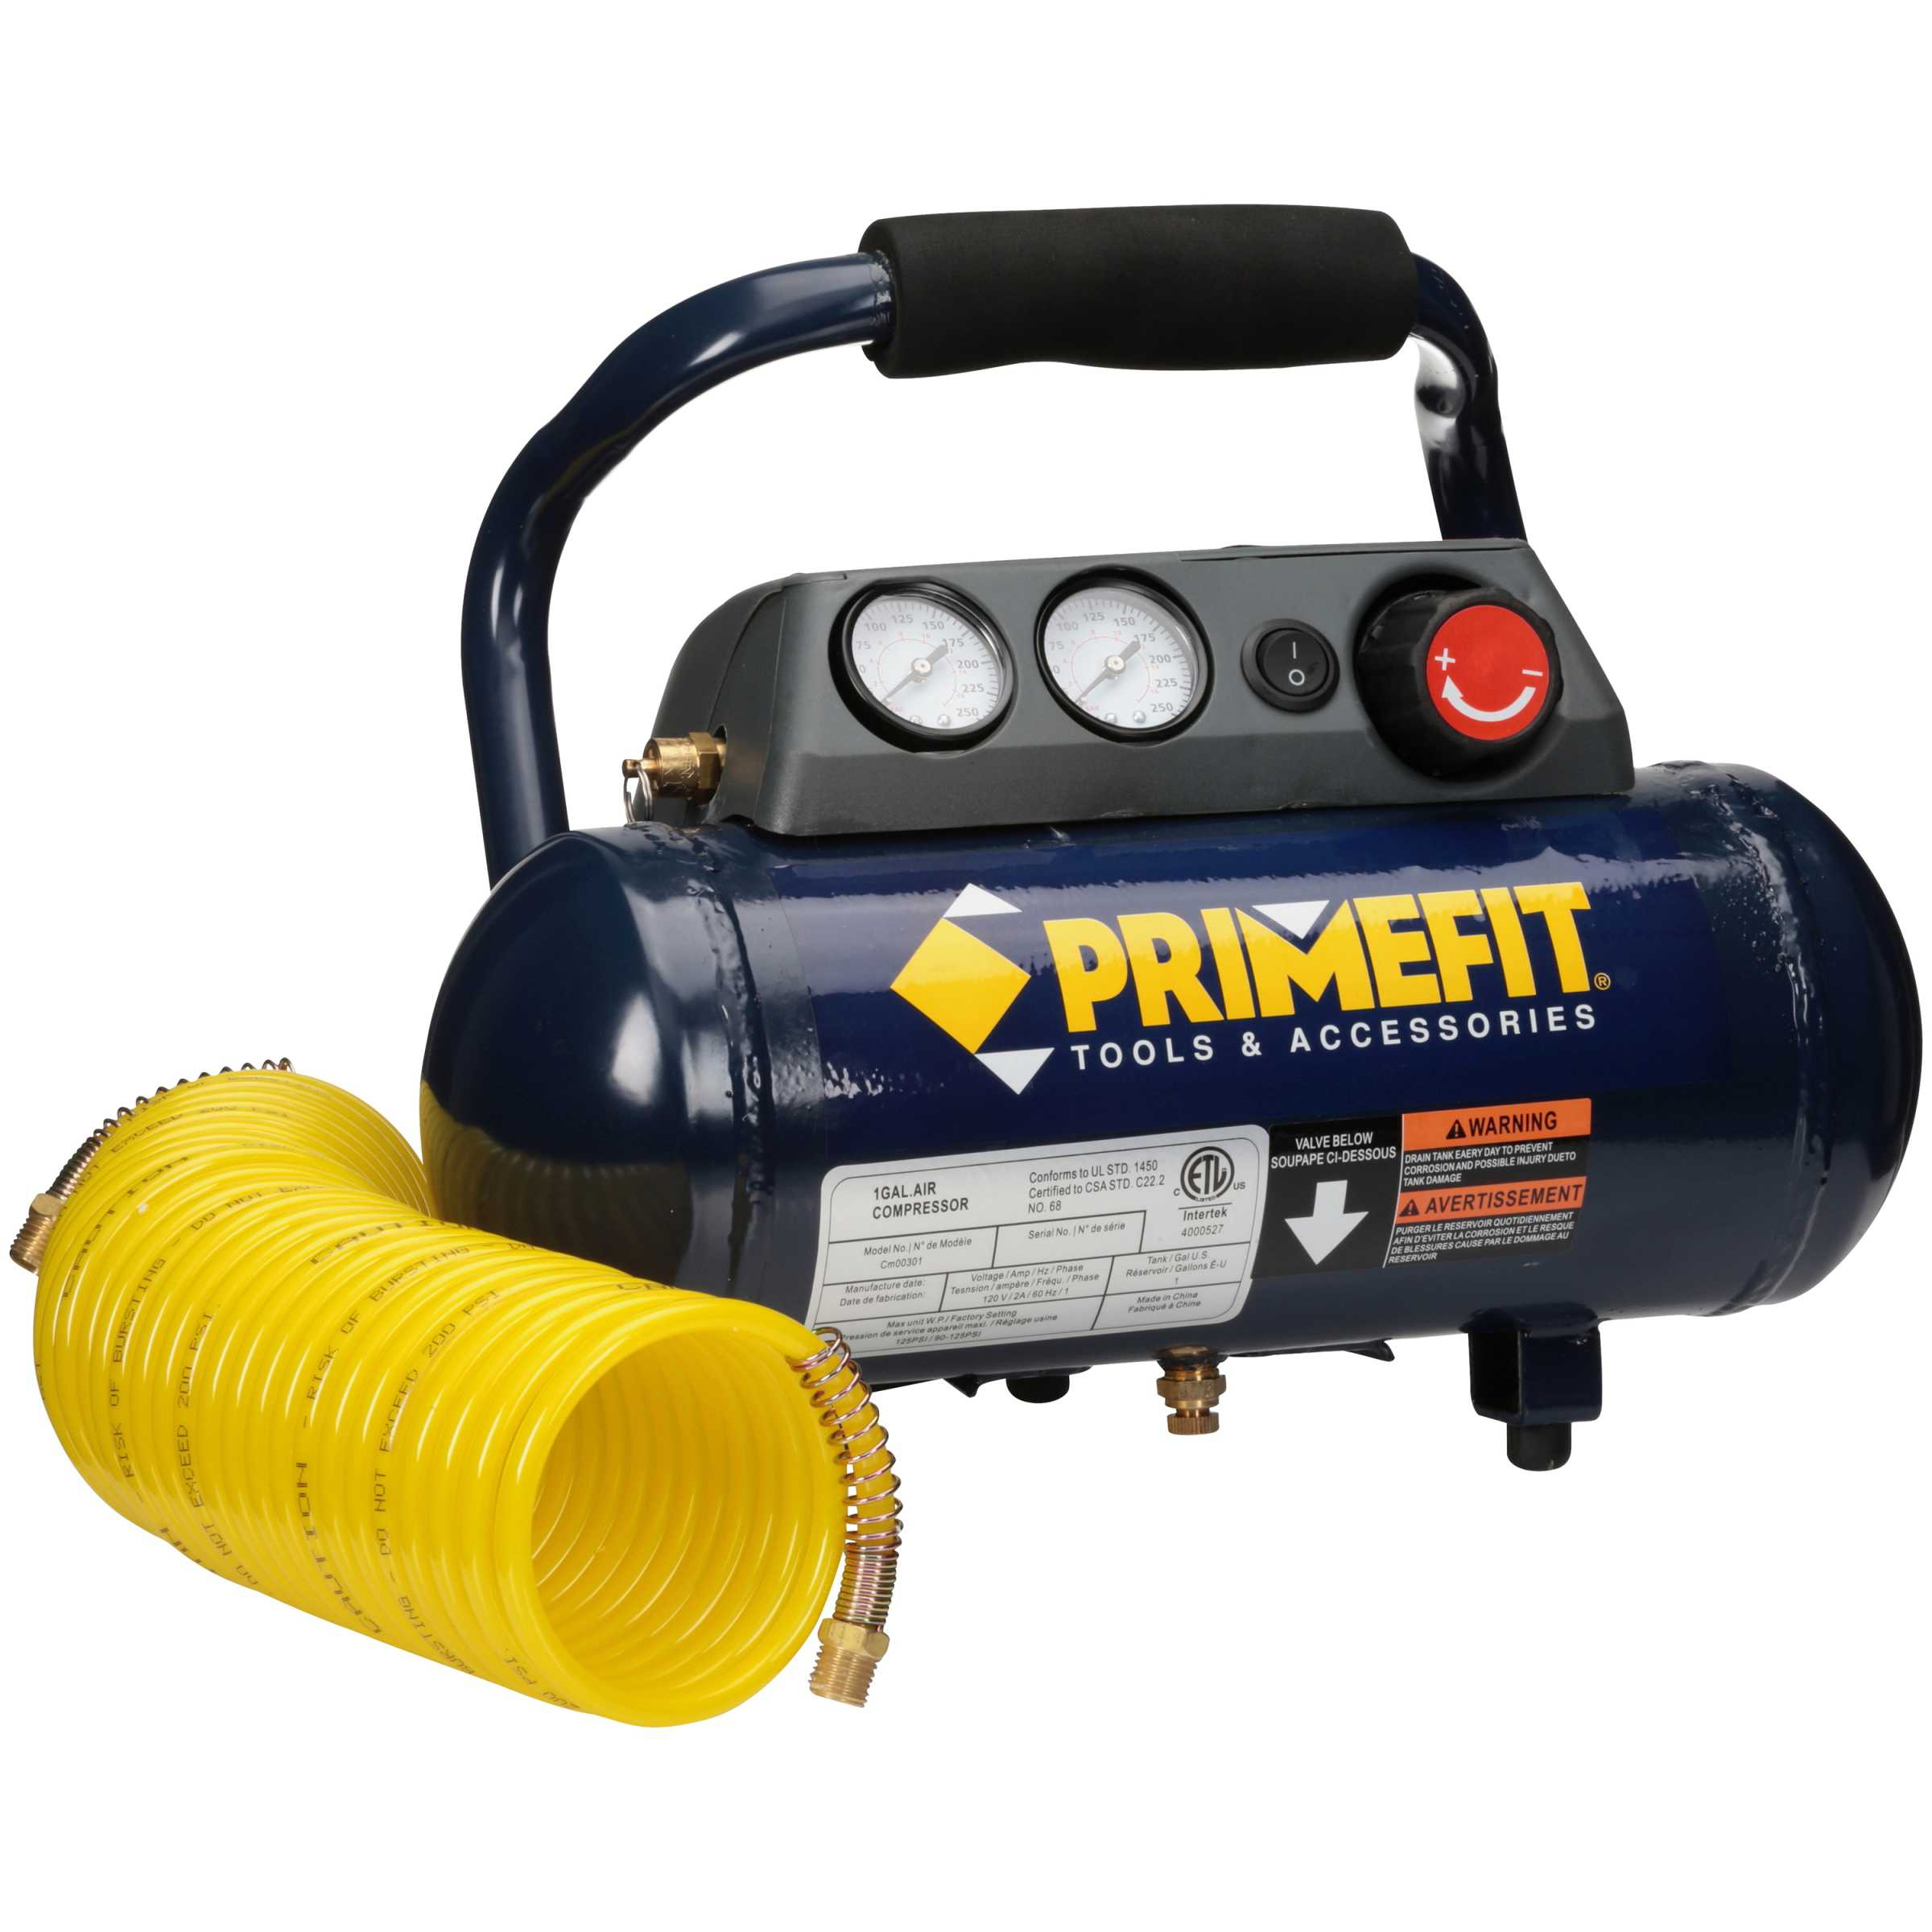 Primefit 1 gal Home Air Compressor